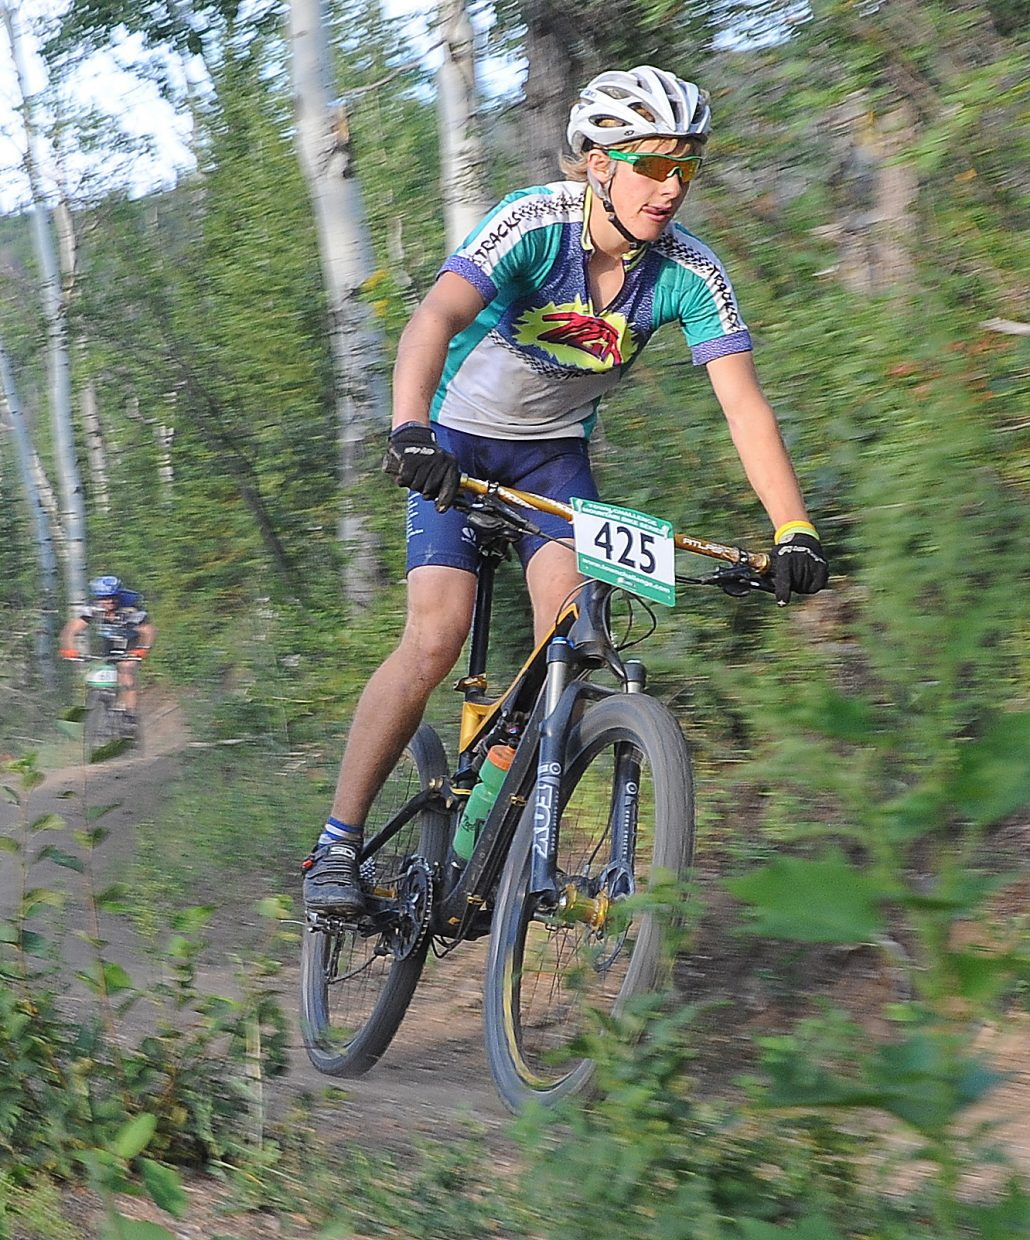 Tanner Heil races Wednesday in the Sunshine Loop Town Challenge race at Steamboat Ski Area.